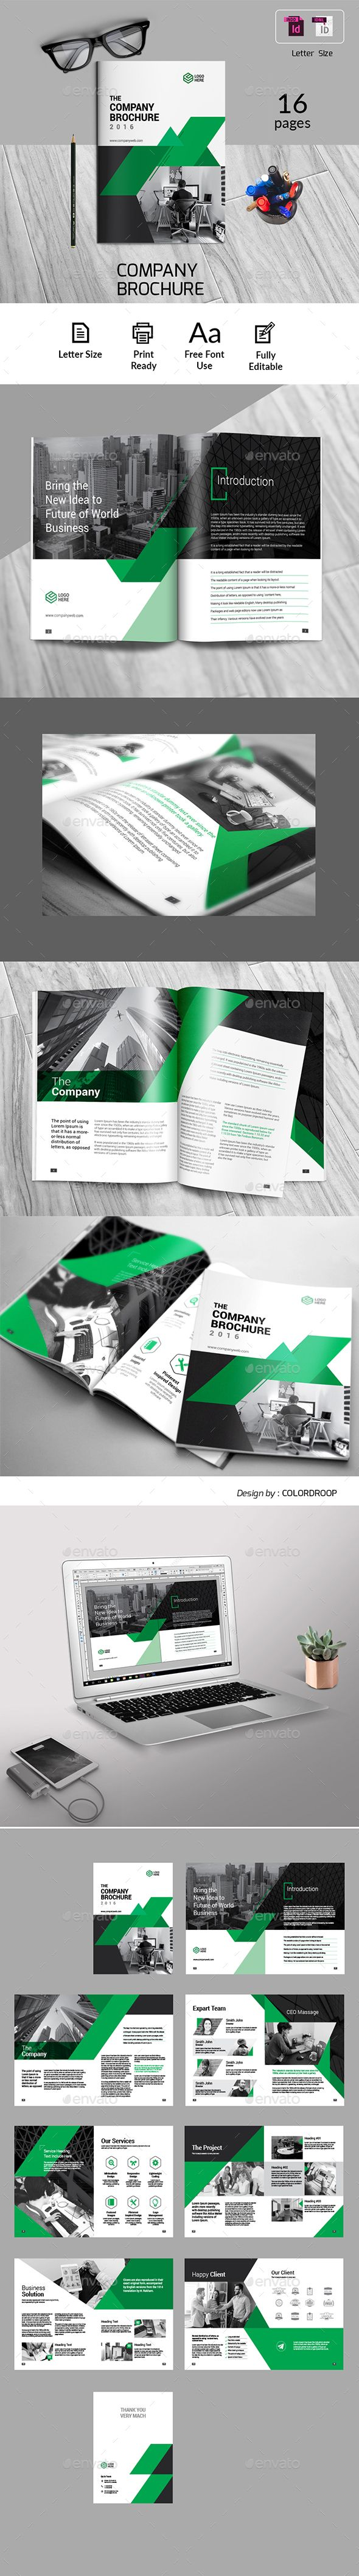 Business Brochure — InDesign INDD #letter #company • Download ➝ https://graphicriver.net/item/business-brochure/19897327?ref=pxcr